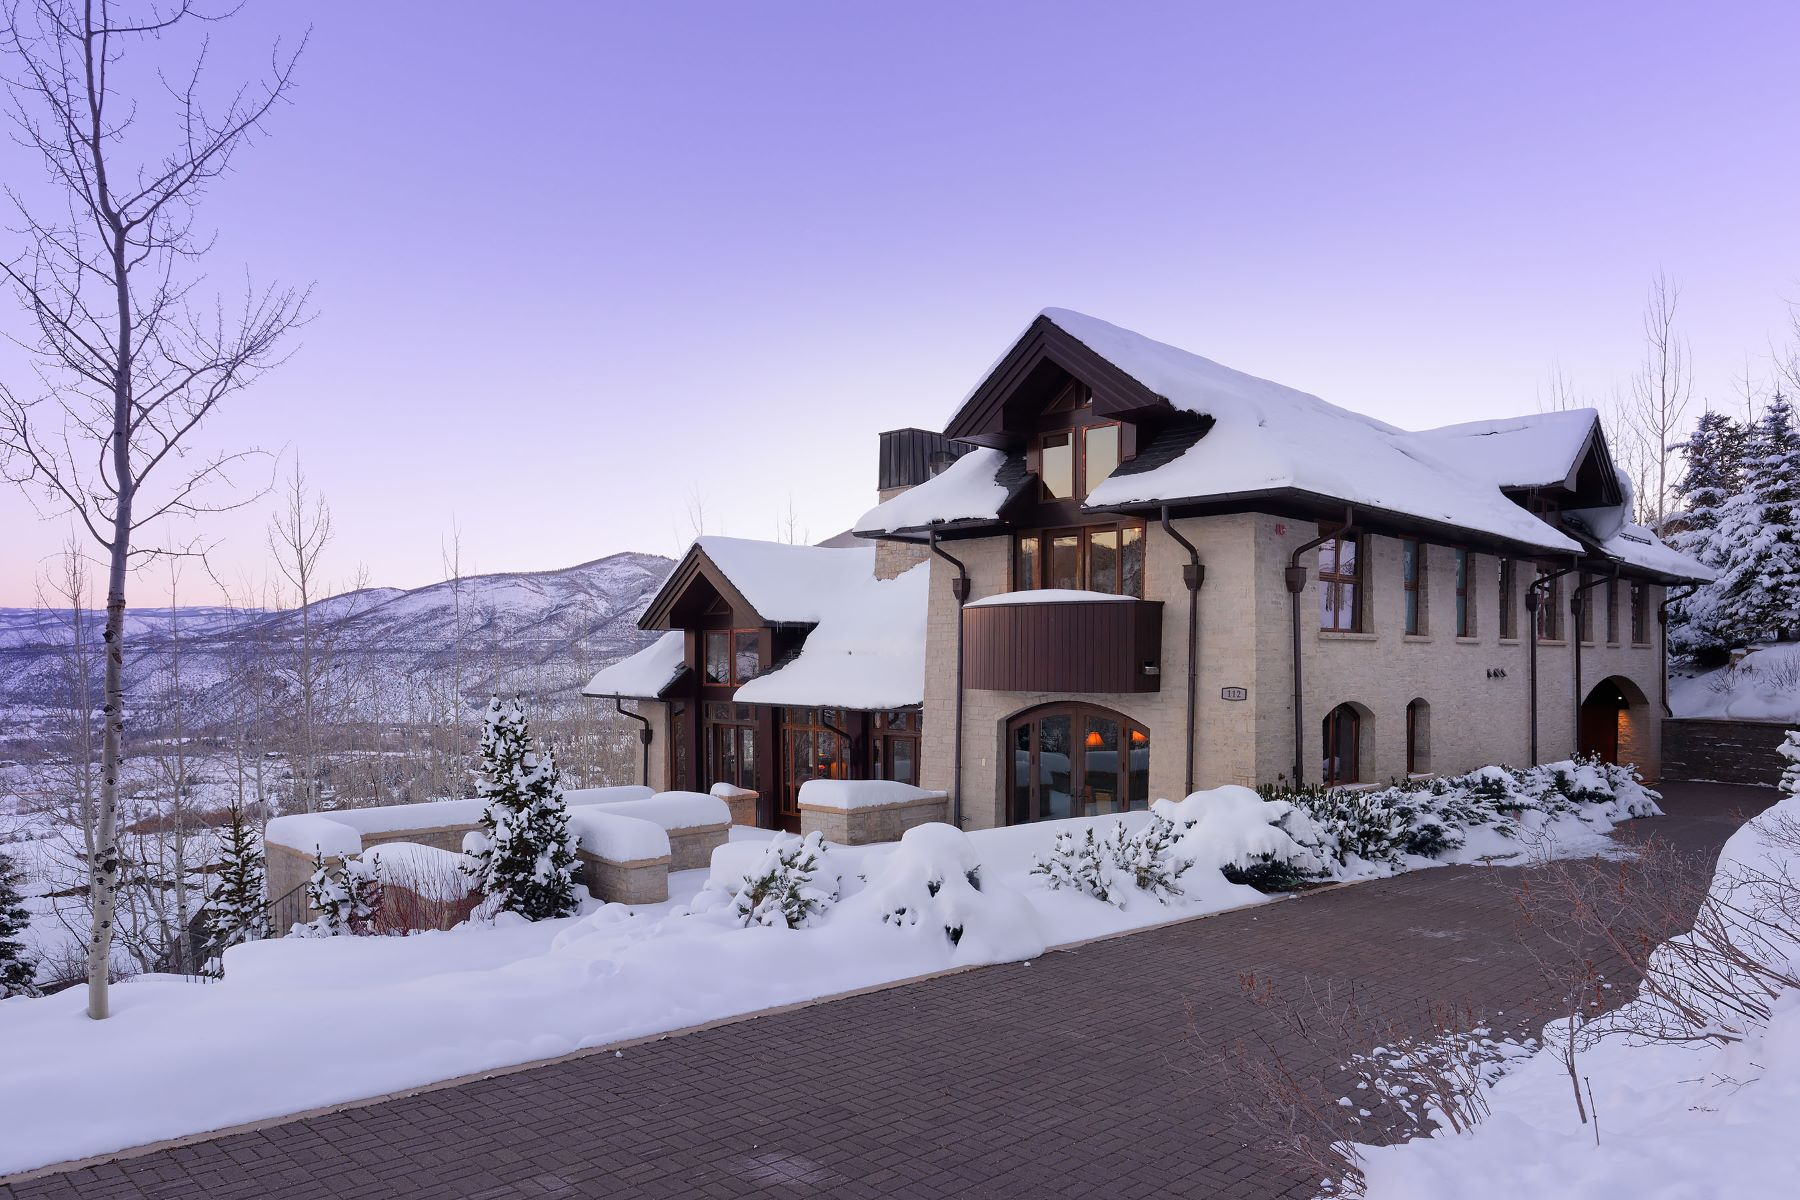 Single Family Home for Active at Falcon One 112 Falcon Road Aspen, Colorado 81611 United States